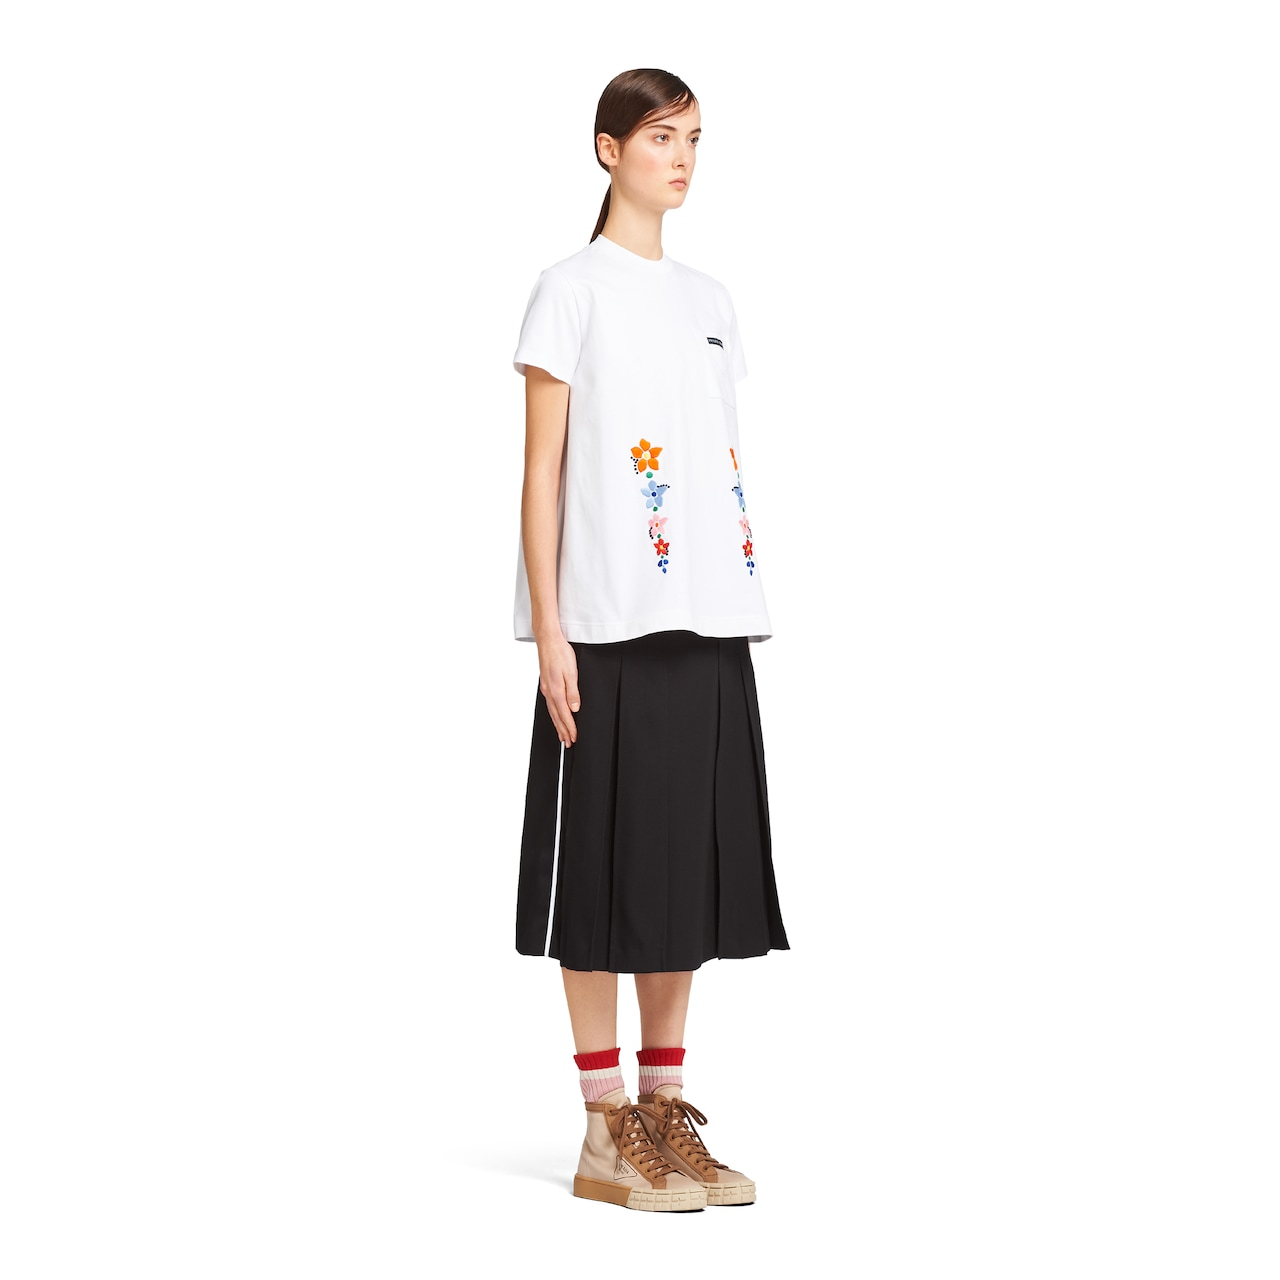 Prada Cotton jersey T-shirt with embroidery 3